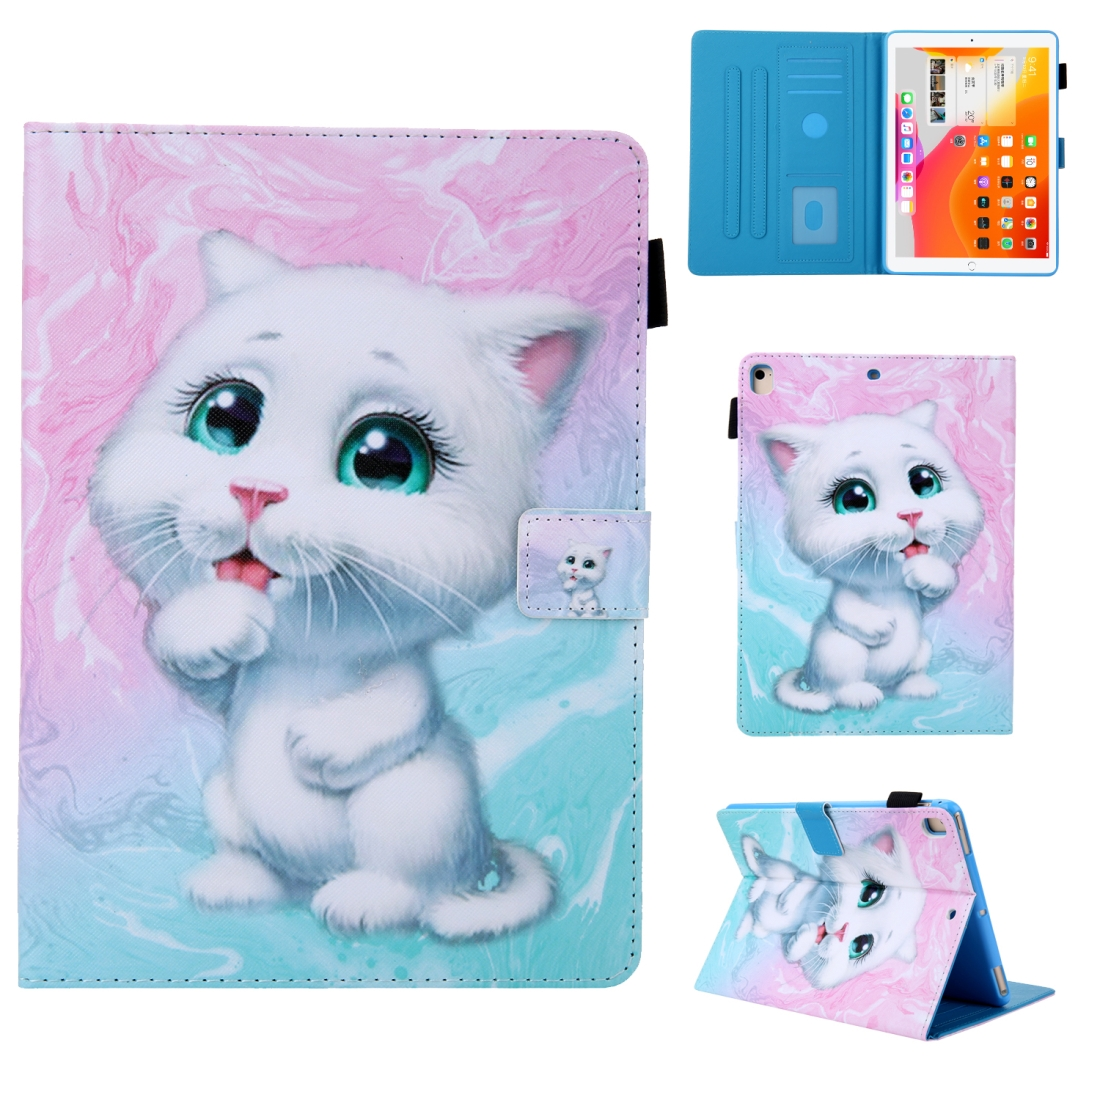 iPad 10.5 Case Colorful Design Leather Case with Sleeve (Cat)